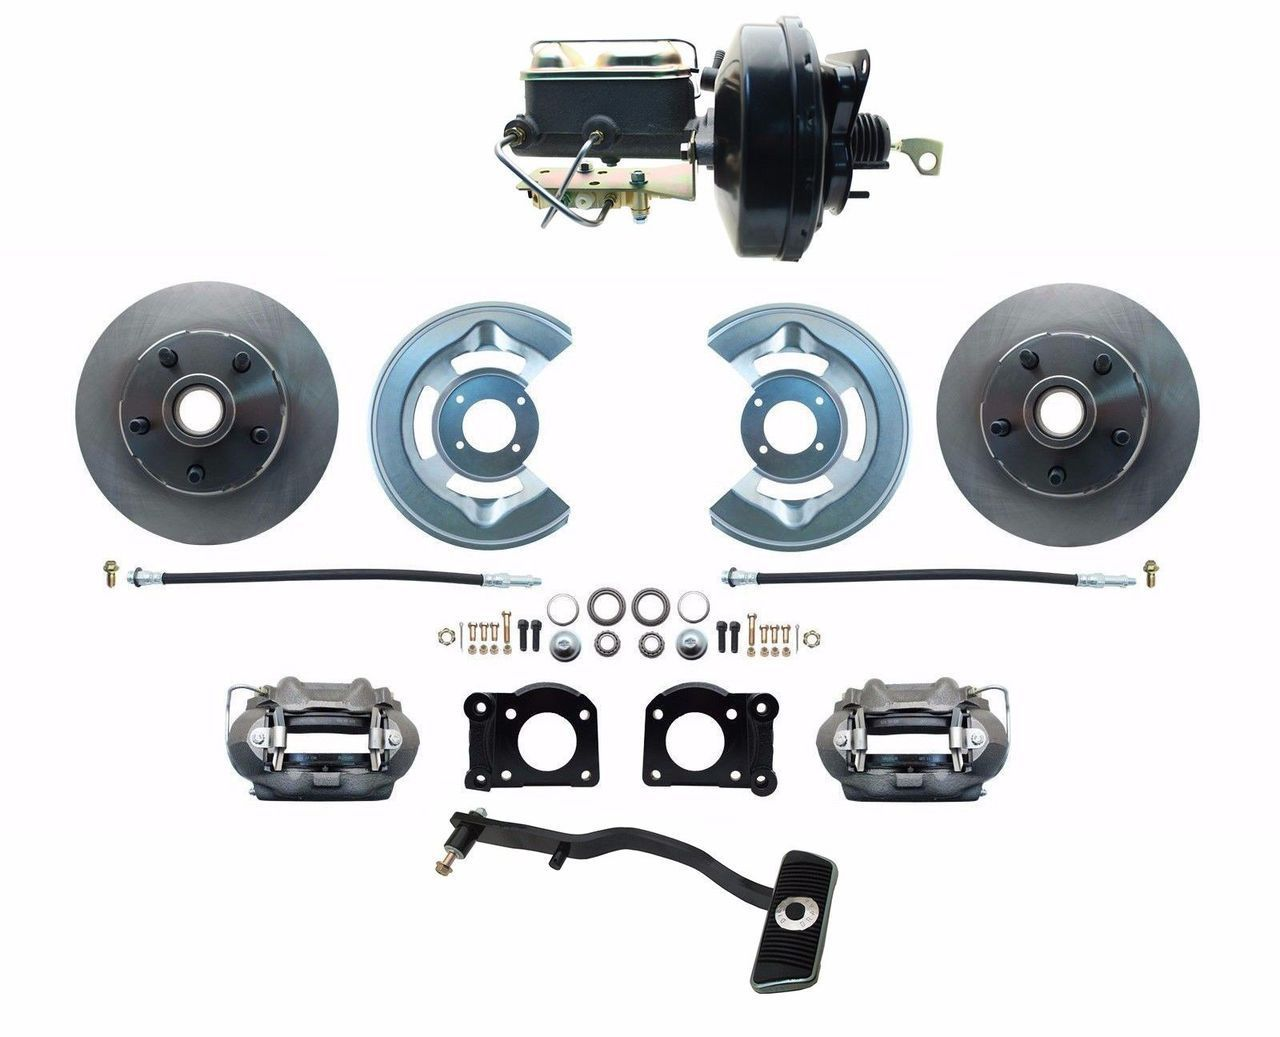 Mustang 6768 complete kit